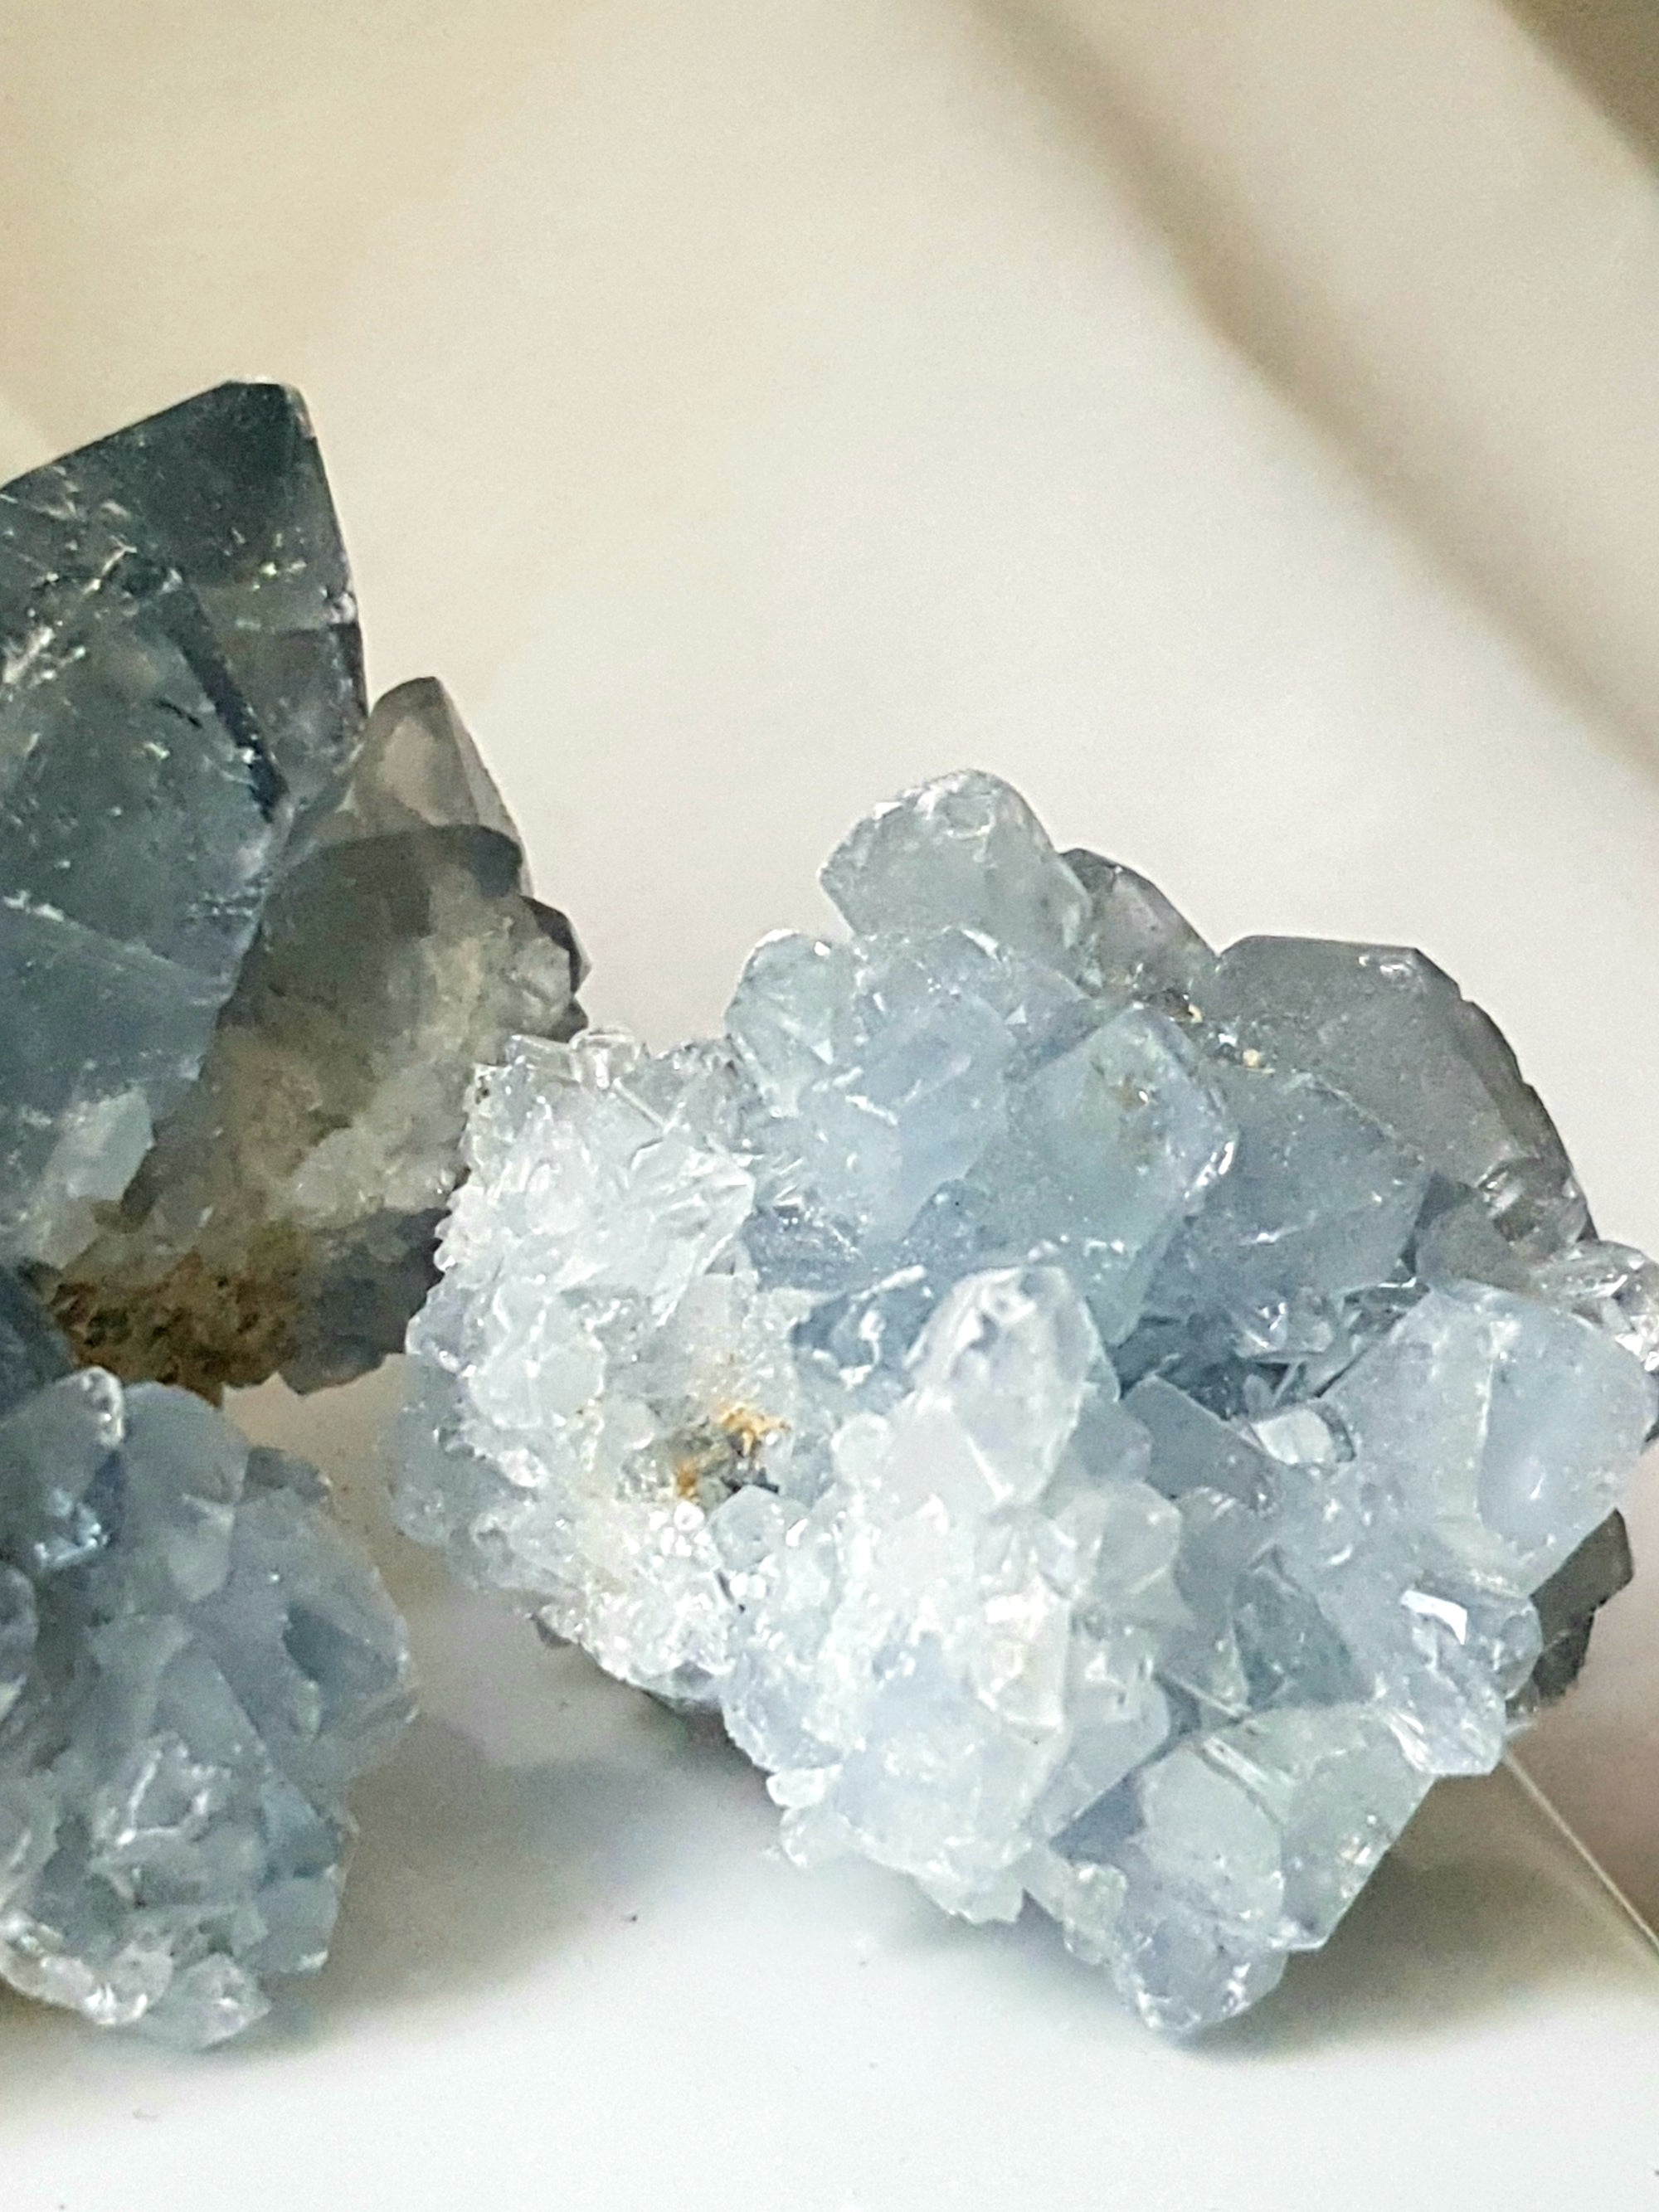 Celestite - The Science of Magic